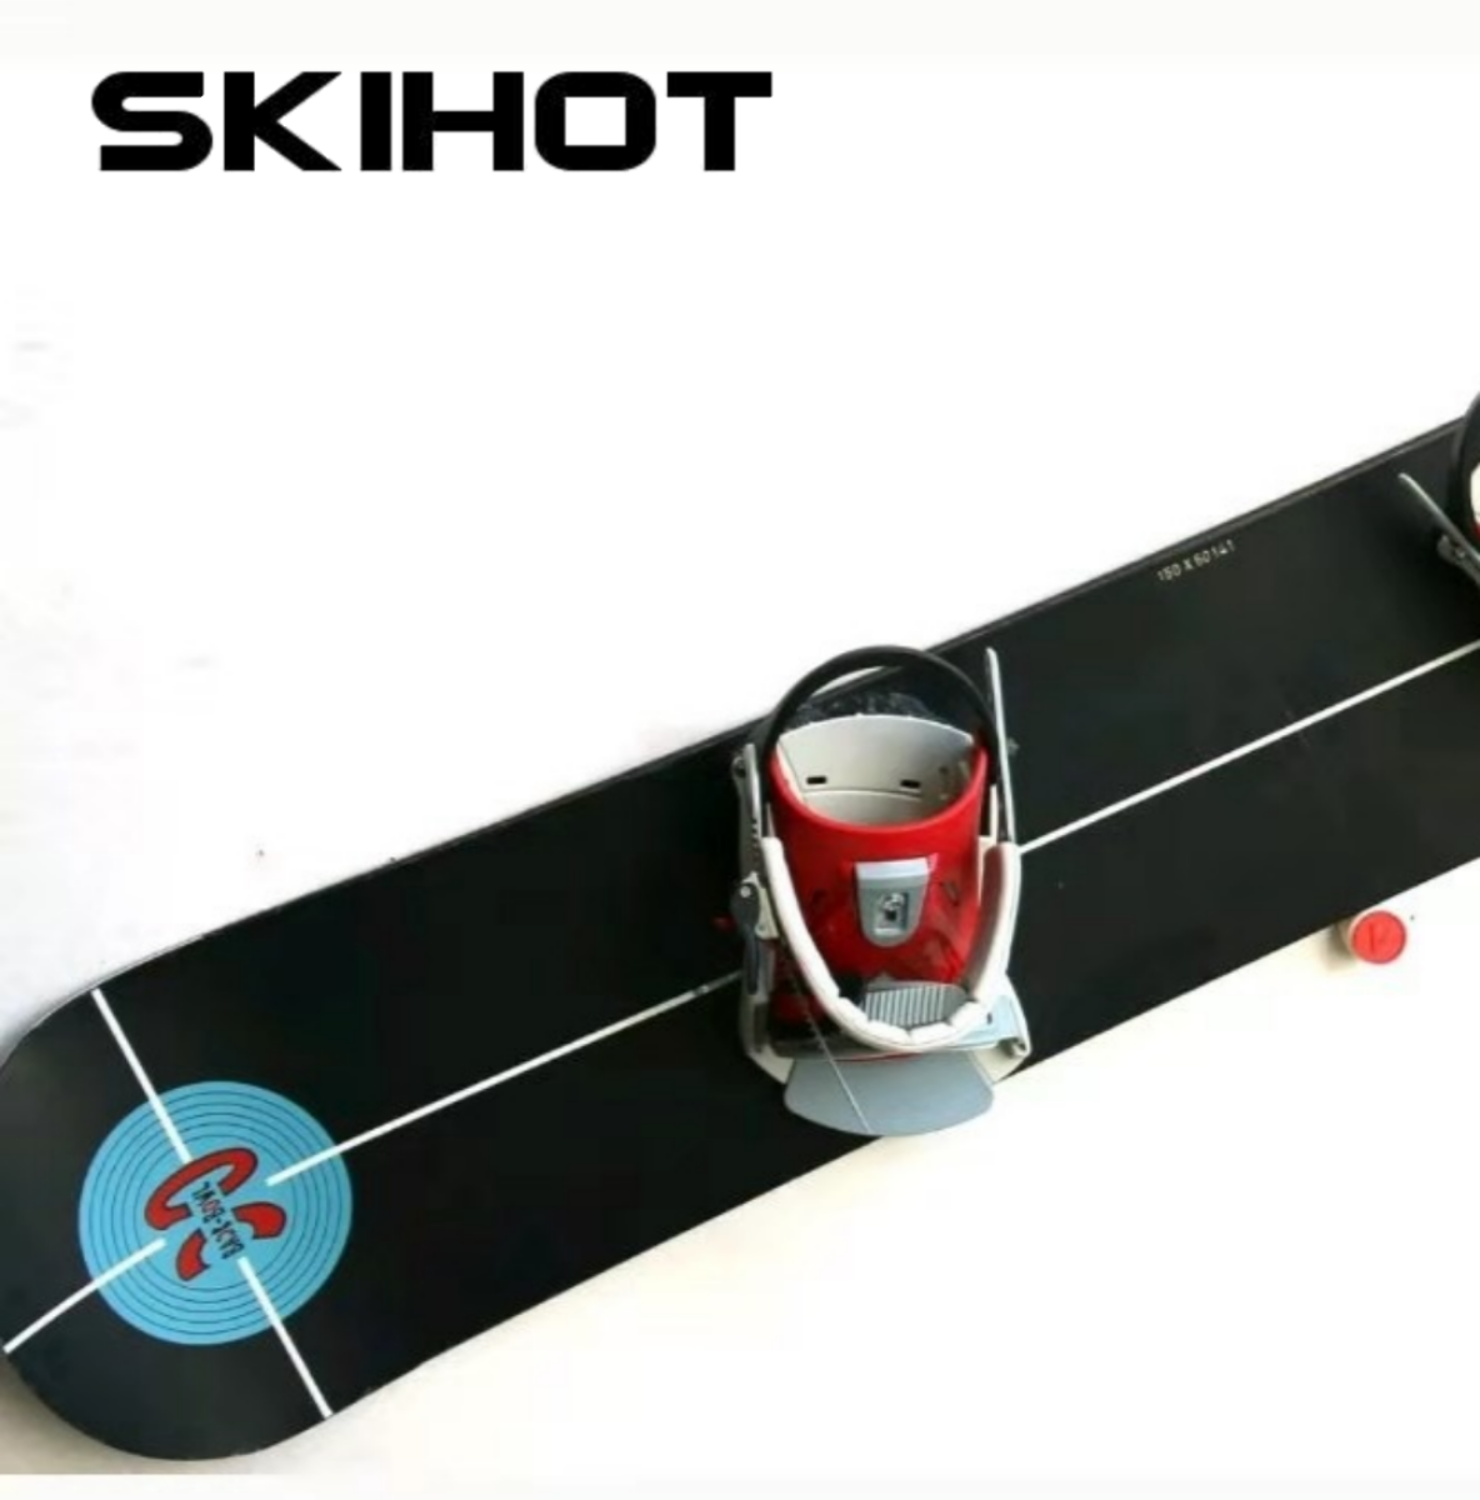 SKIHOT Snowboard Hanger Skateboard Holder Longboard Display Storage Rack Wall Mount